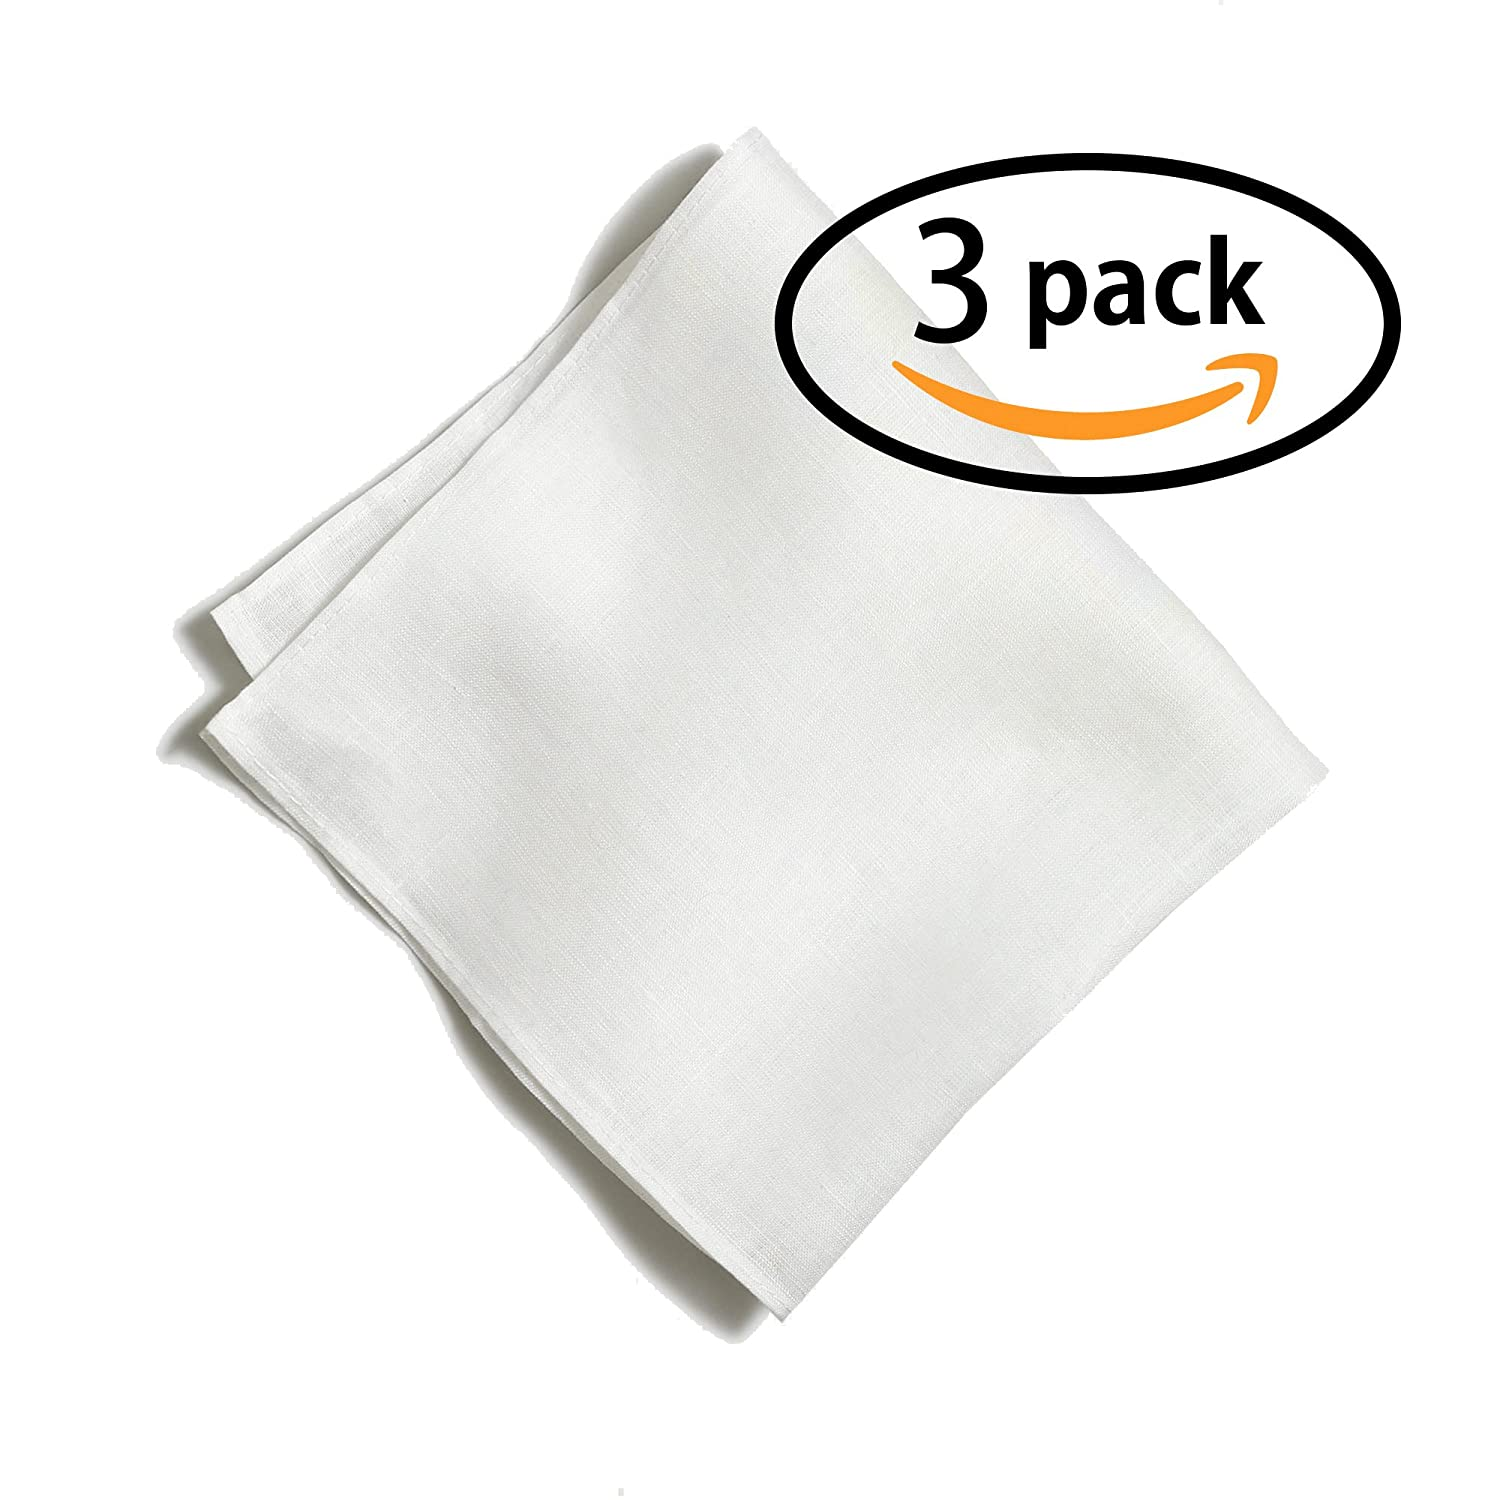 100% White Linen Handmade Pocket Square Handkerchief in Perfect Suit Size (3-PACK) Hall Madden